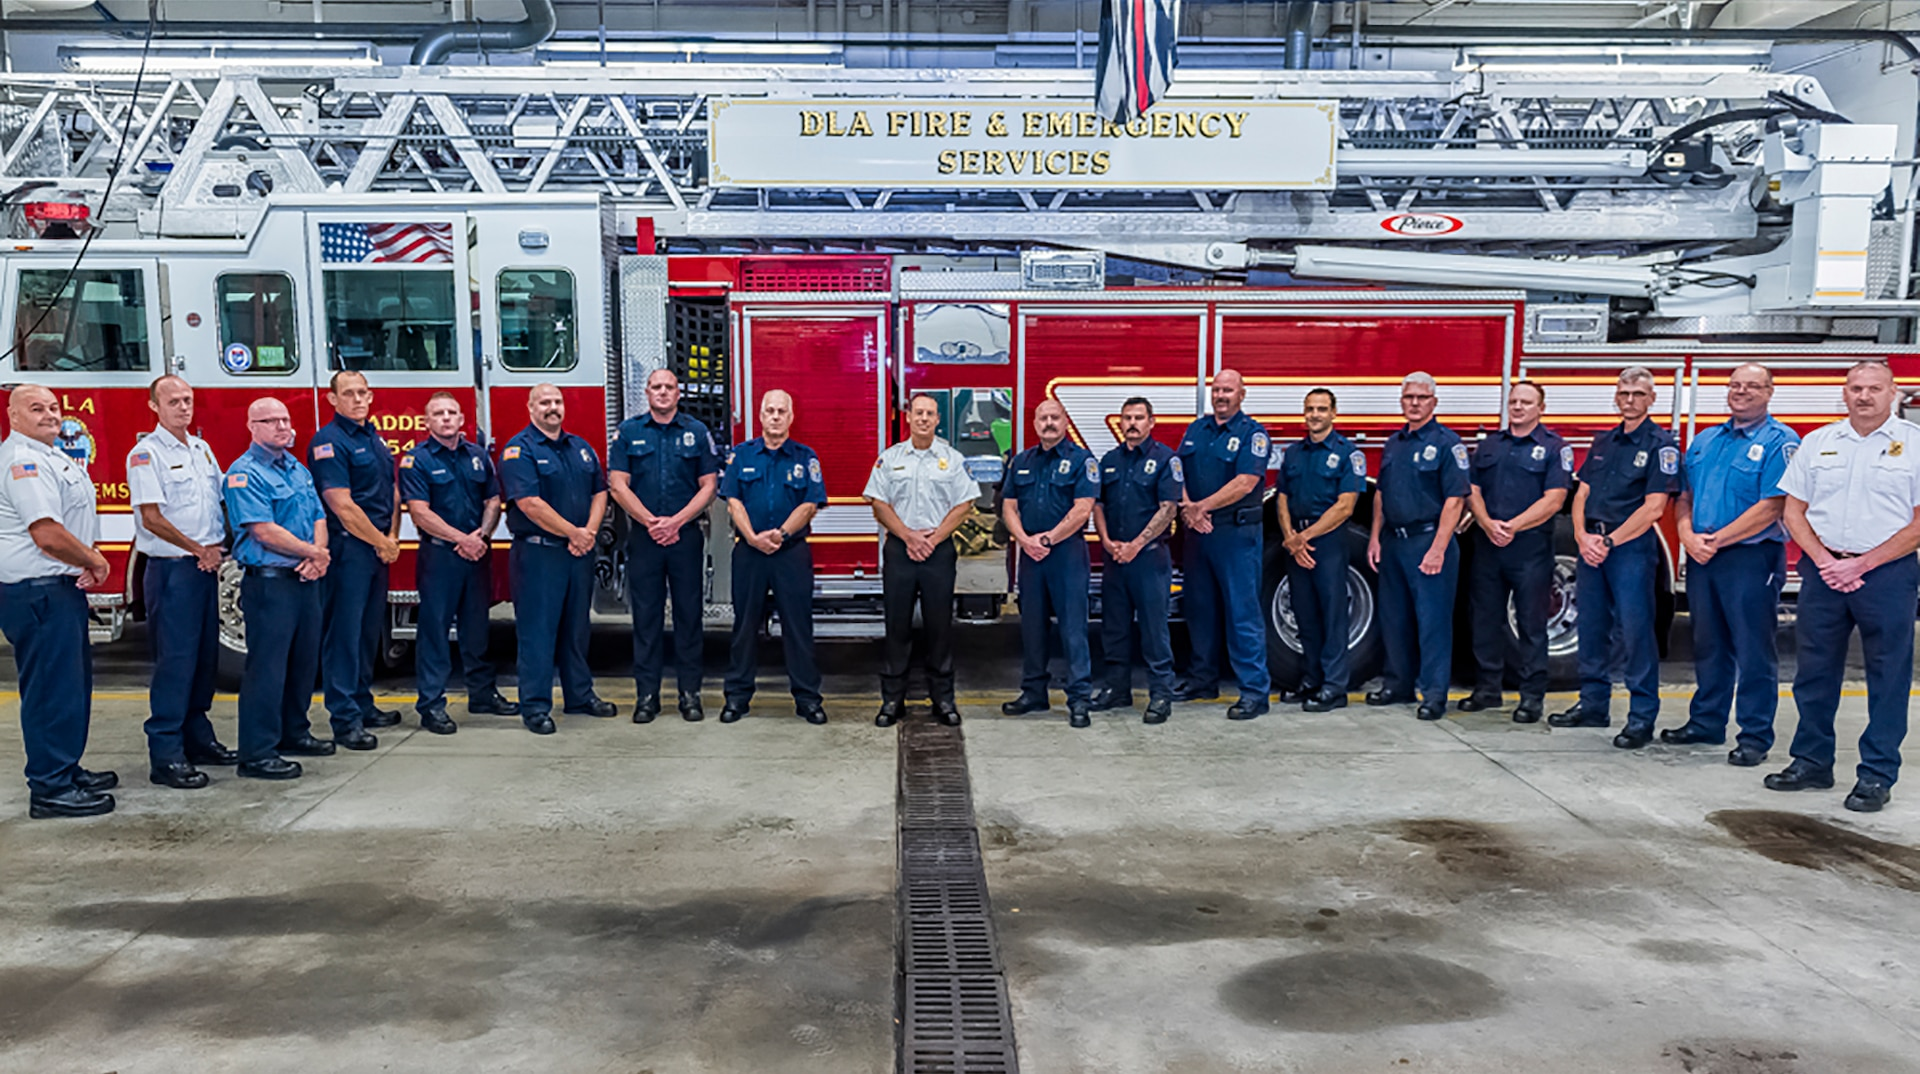 Group photo of Fire Department